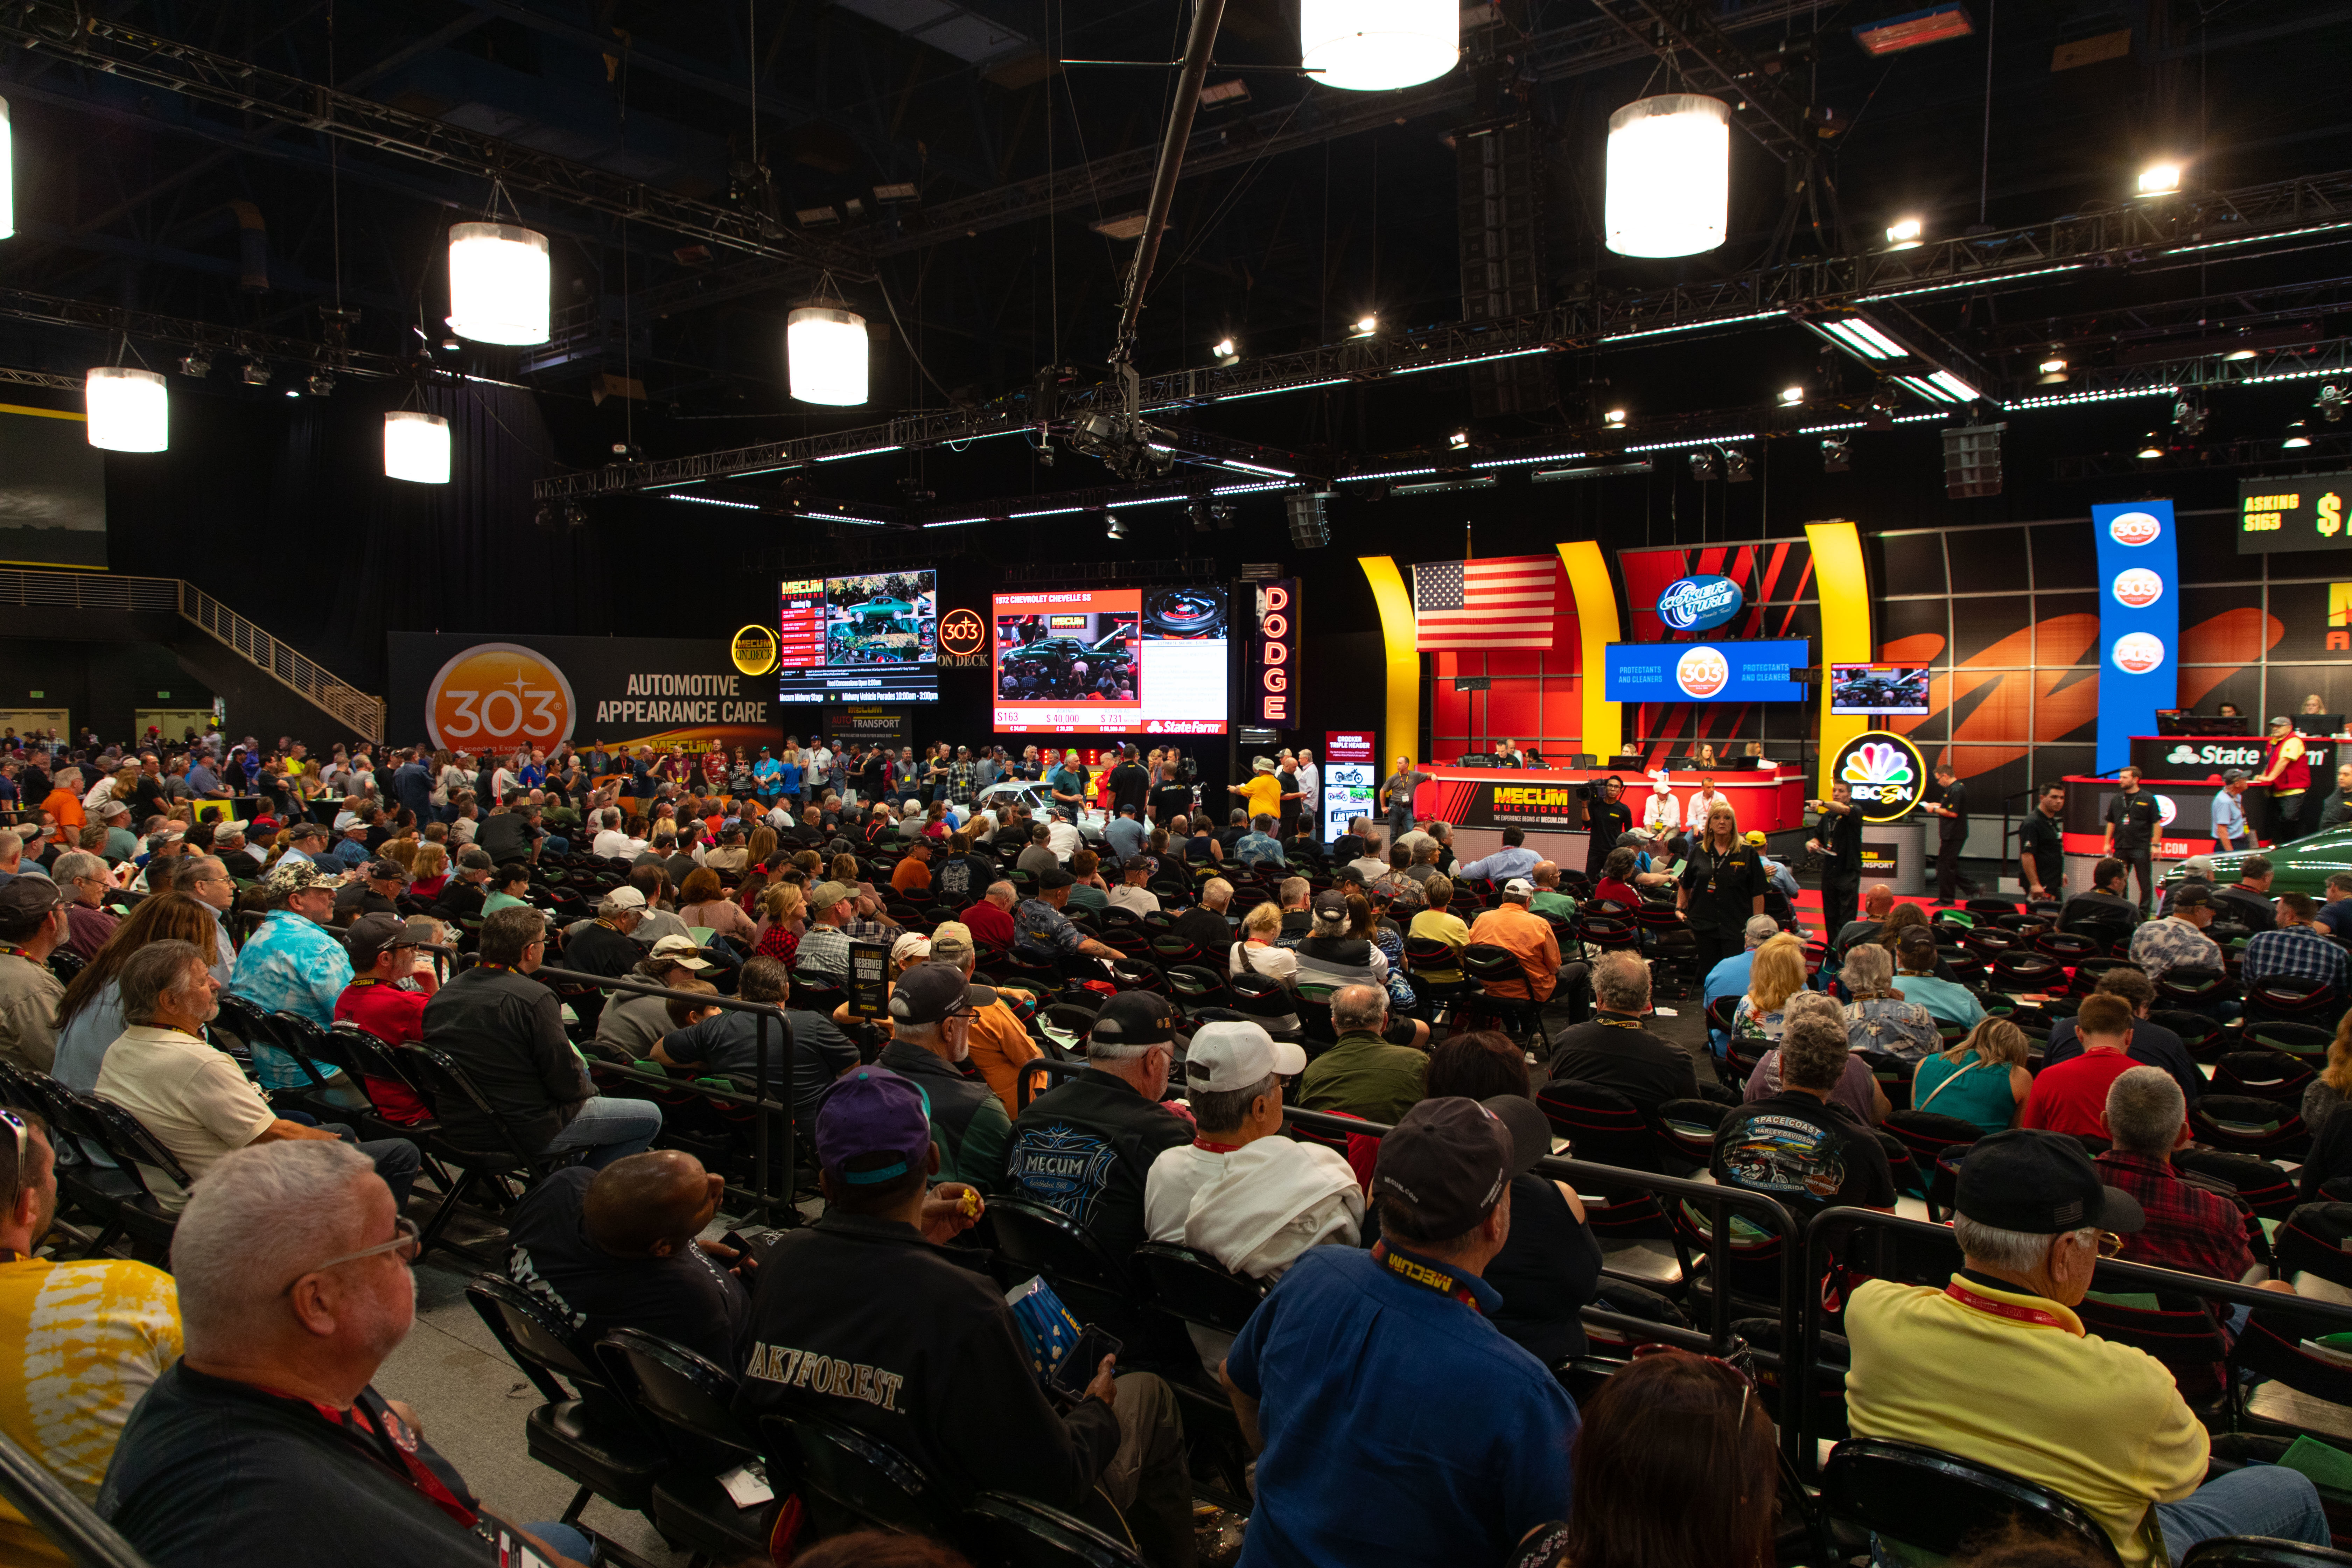 Mecum Kissimmee 2019 The Largest Collector-Car Auction in the World - Mecum Auctions